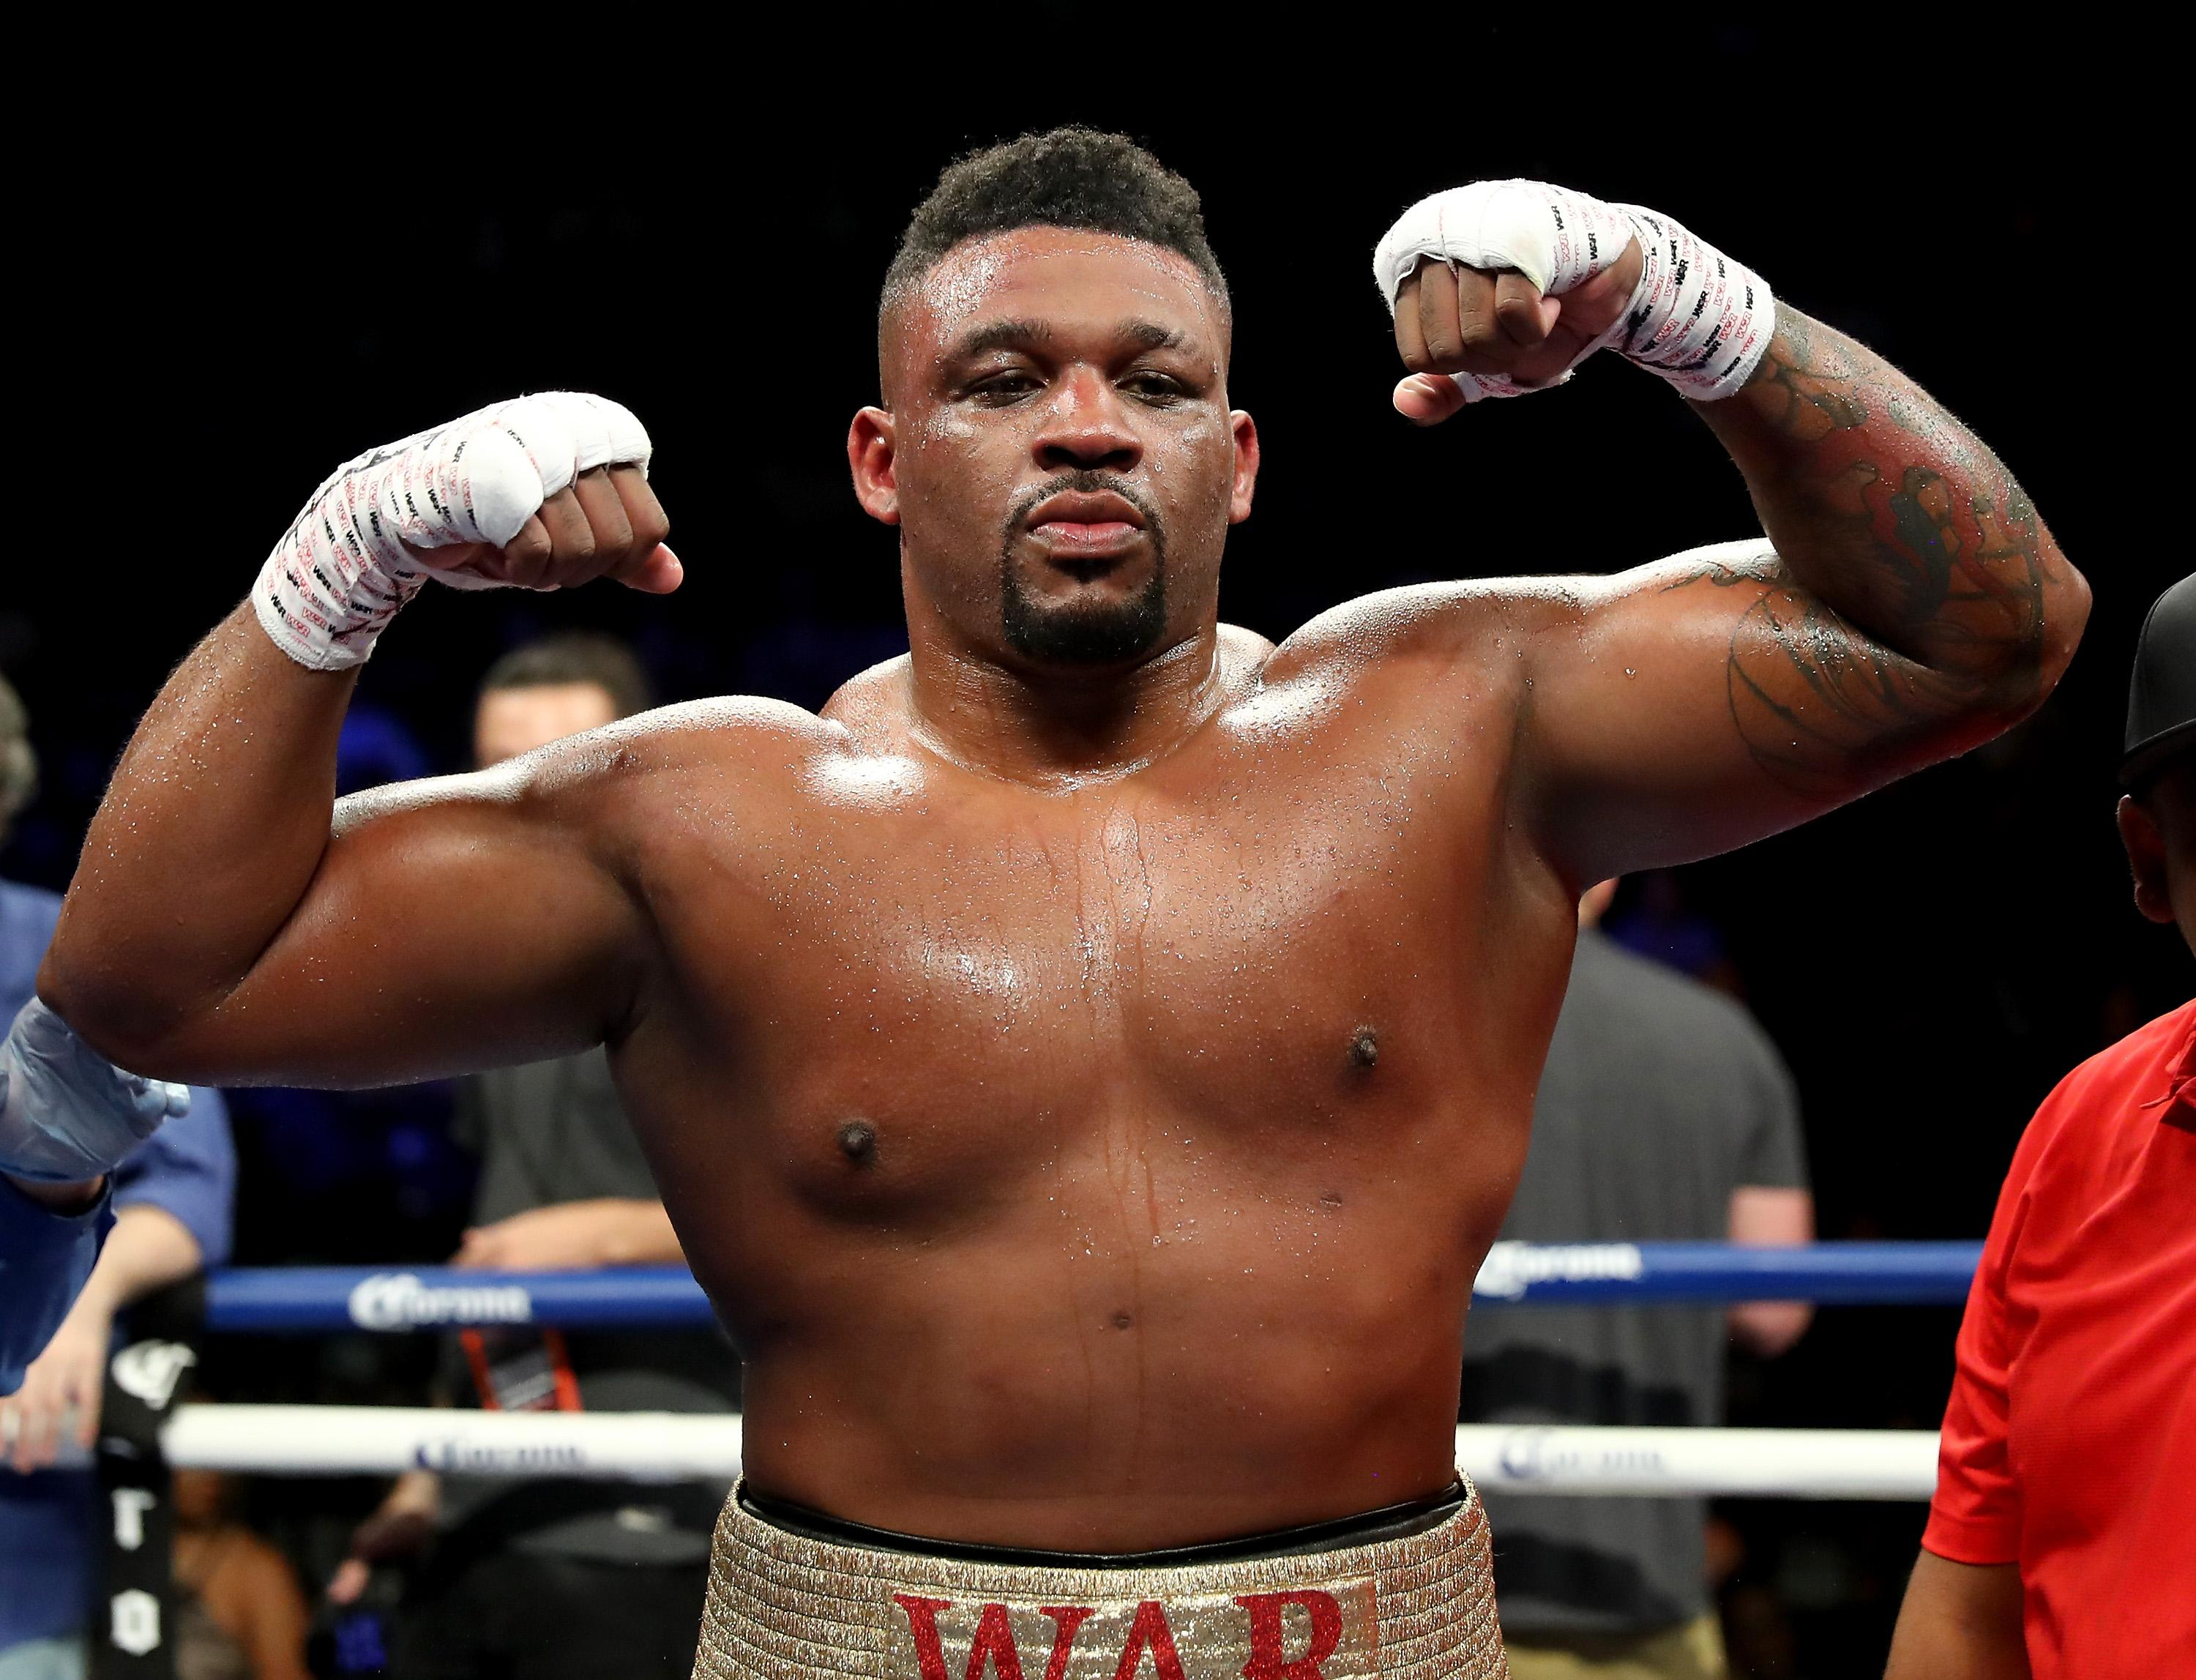 Jarrell Miller's fight this Friday in Madison Square Garden, New York is now off the cards